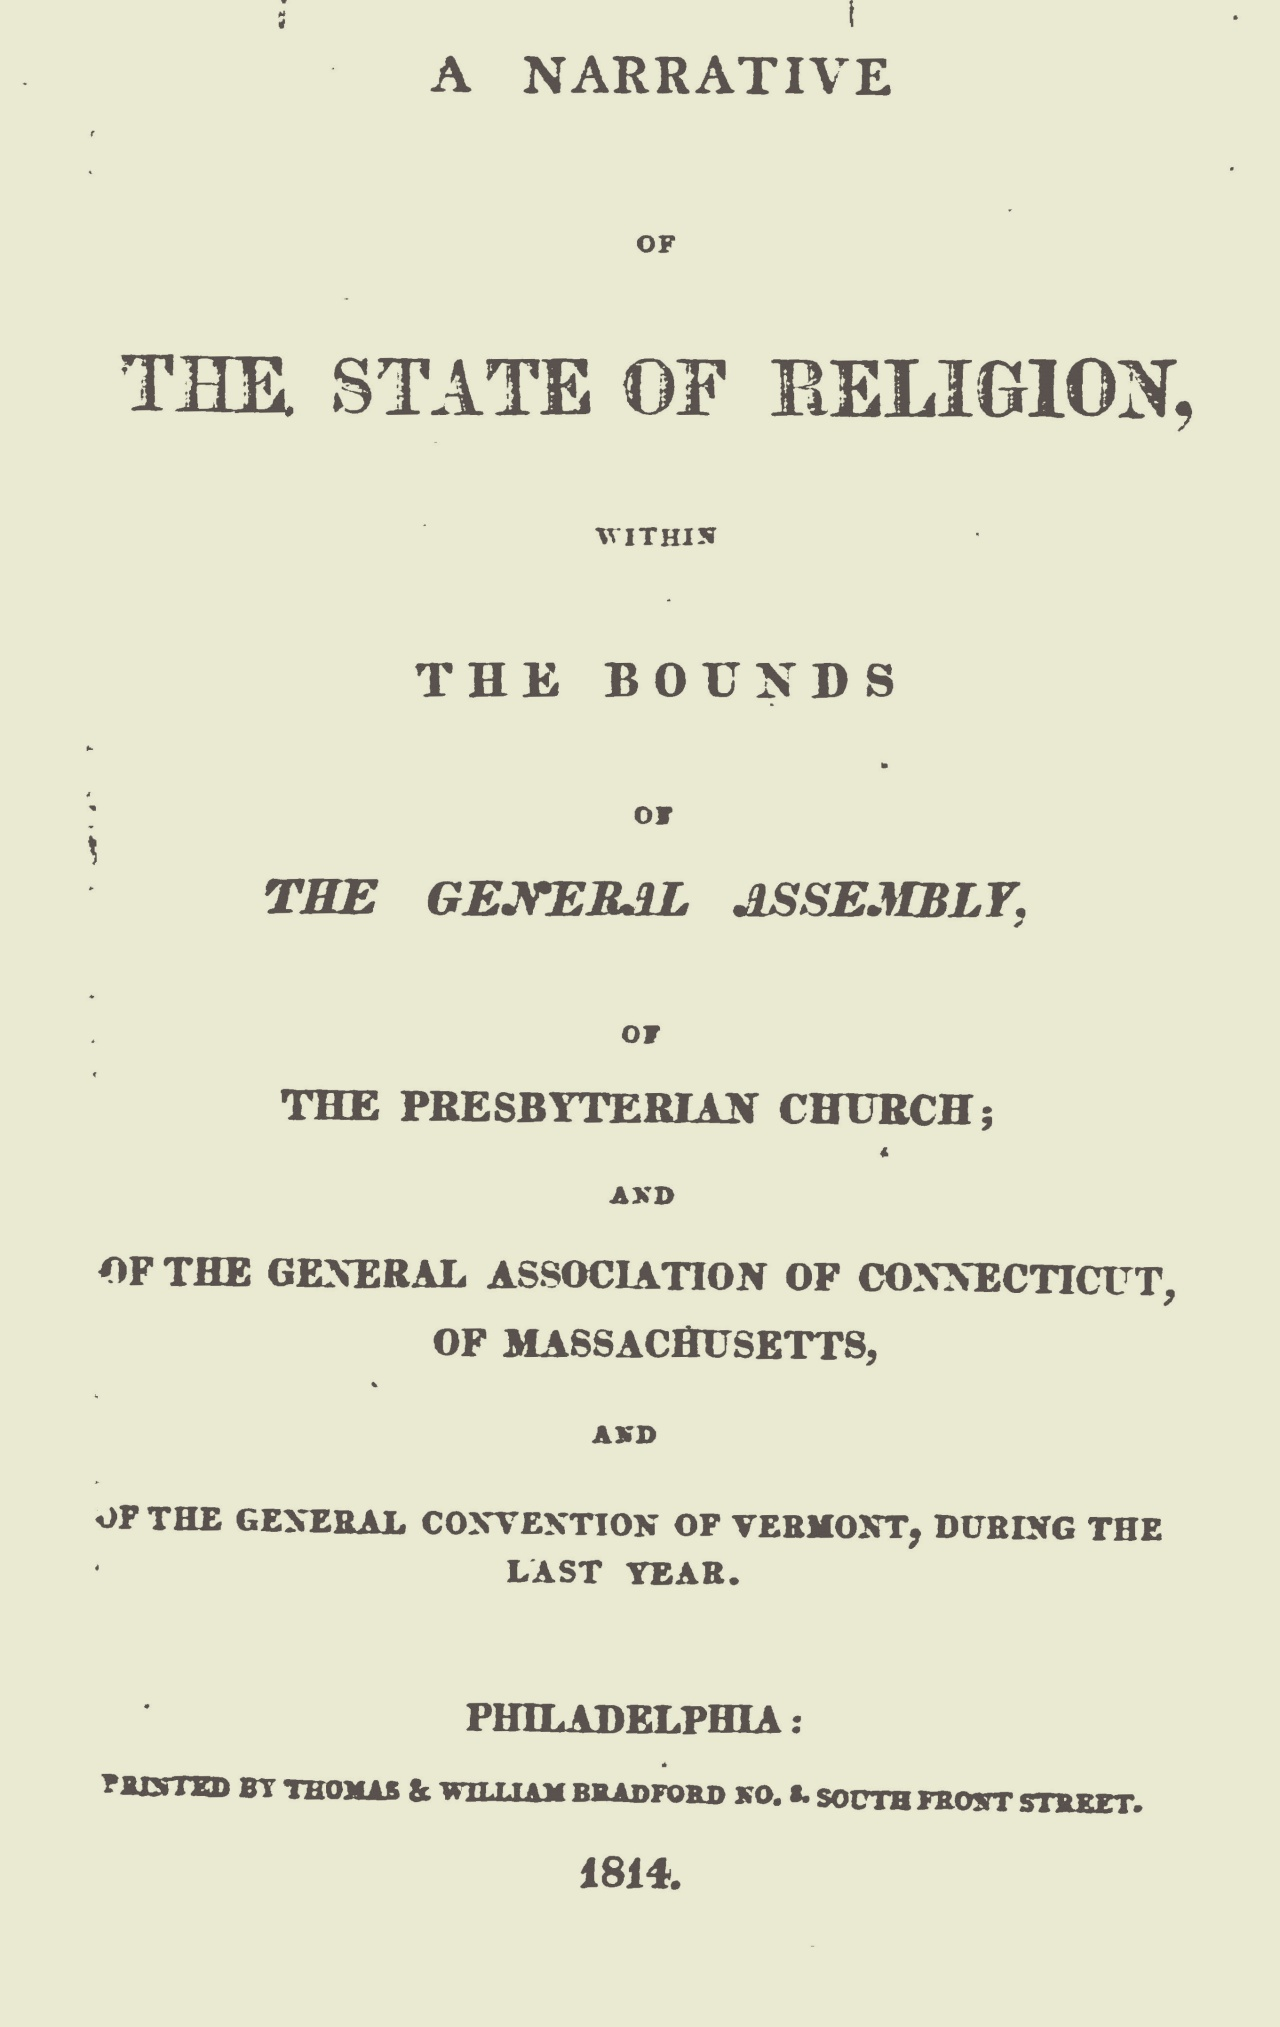 Janeway, Jacob Jones, A Narrative of the State of Religion 1814 Title Page.jpg